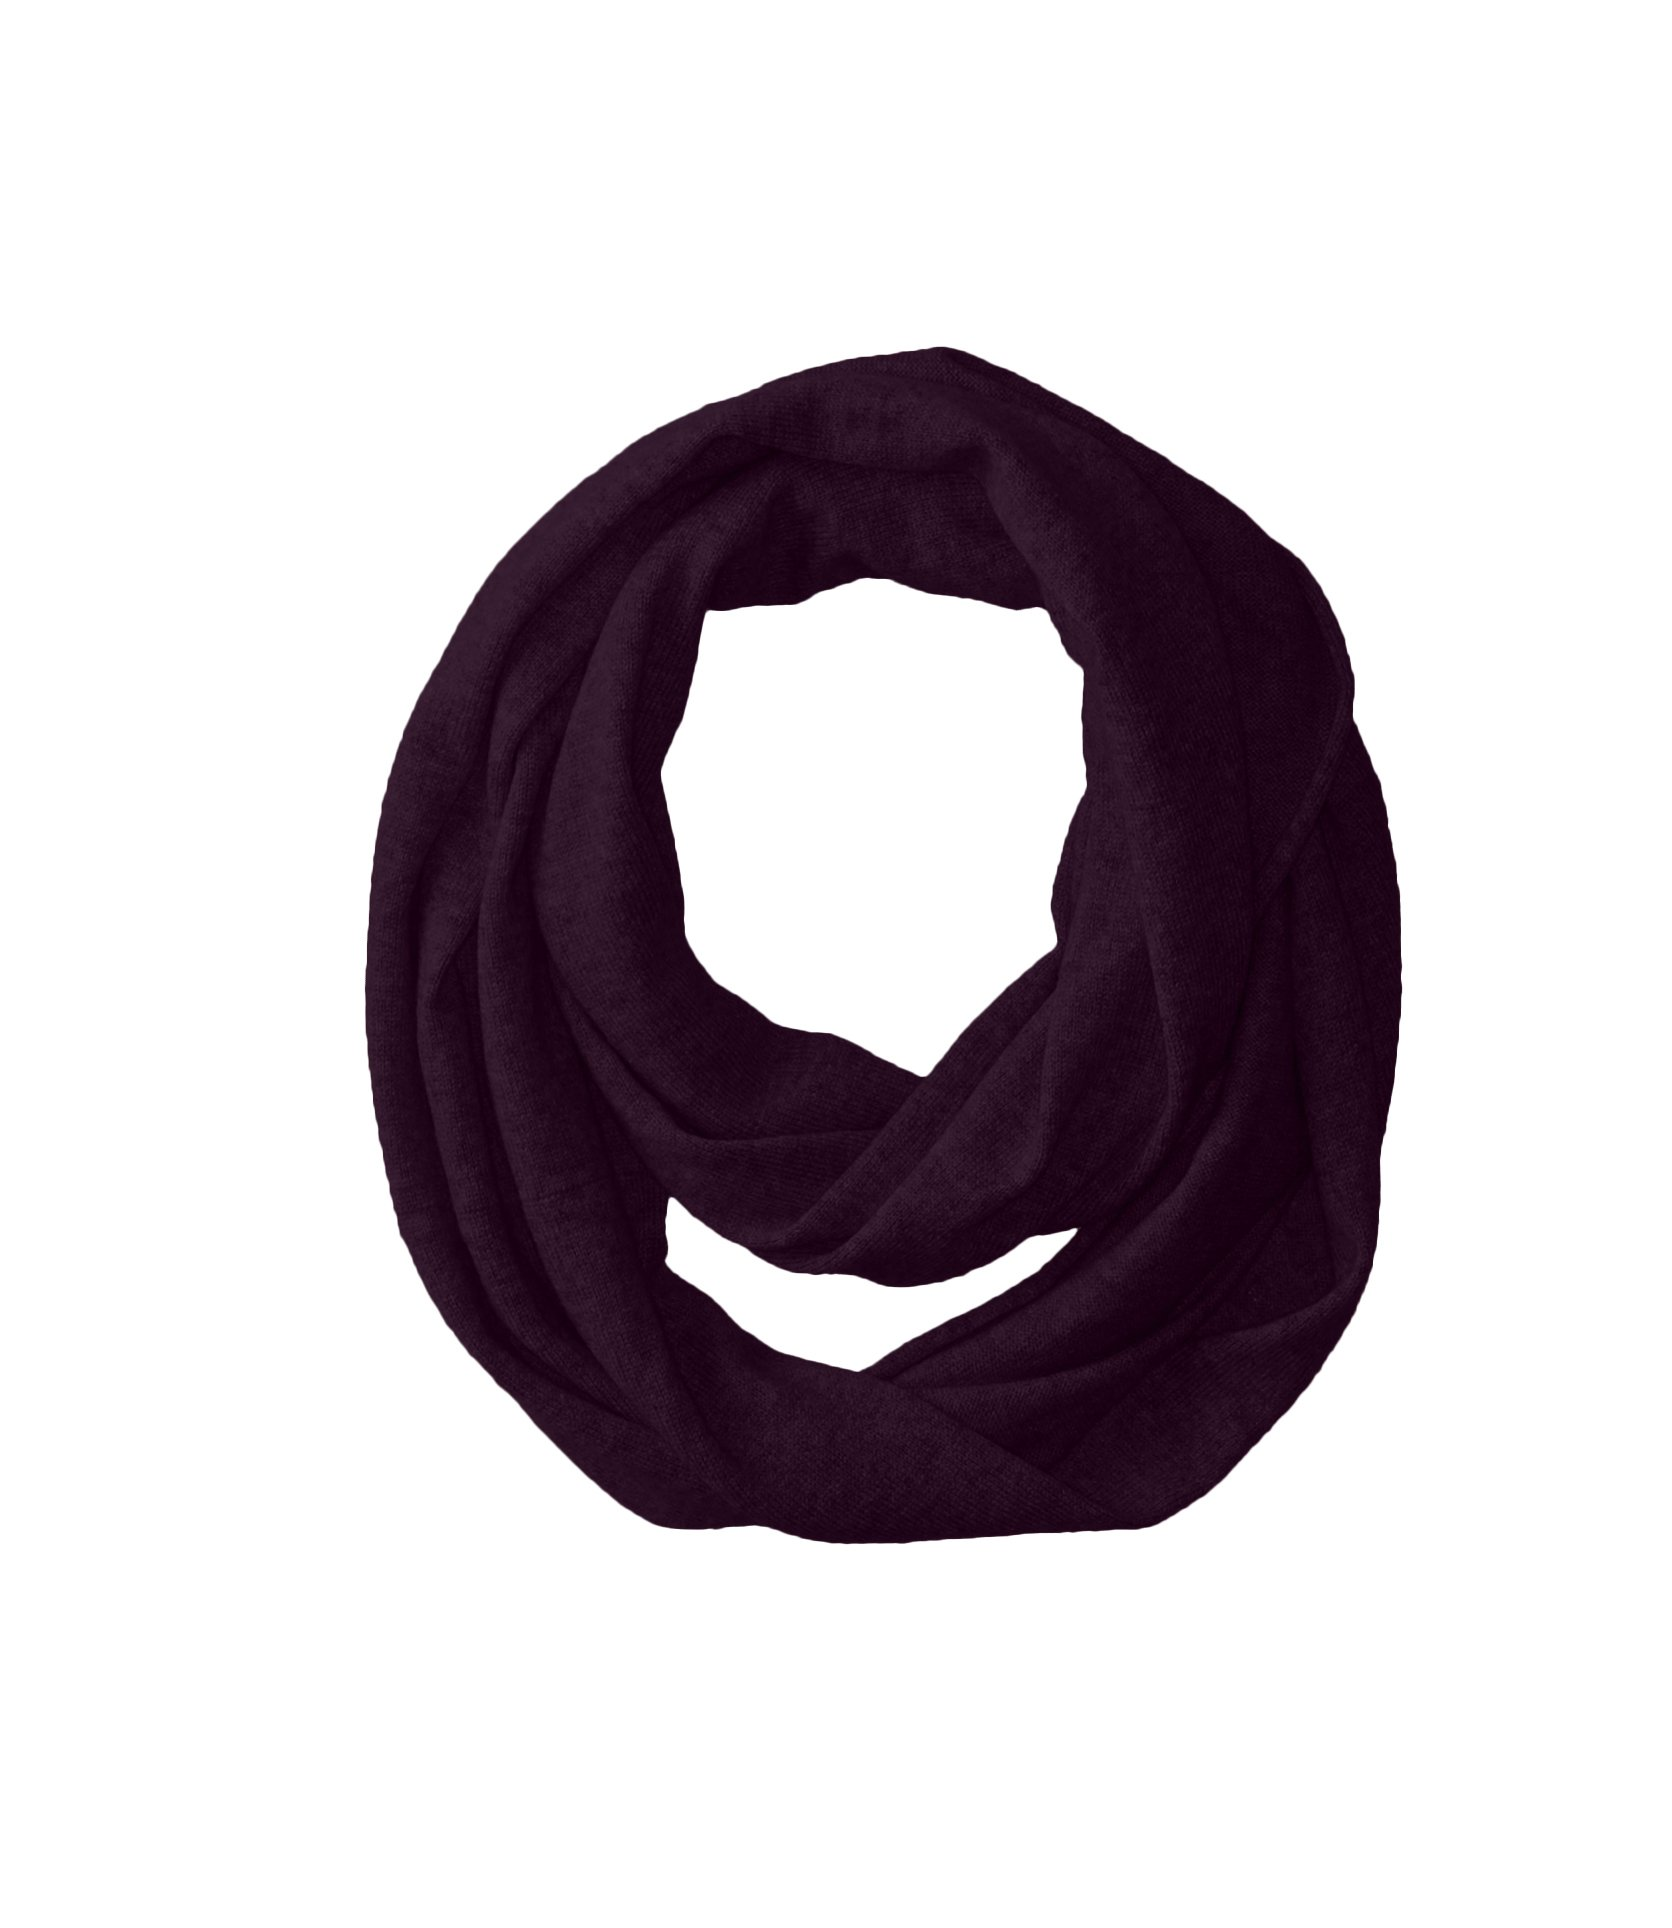 bela.nyc Women's Cashmere Solid Infinity Scarf, Plum, One Size by bela.nyc